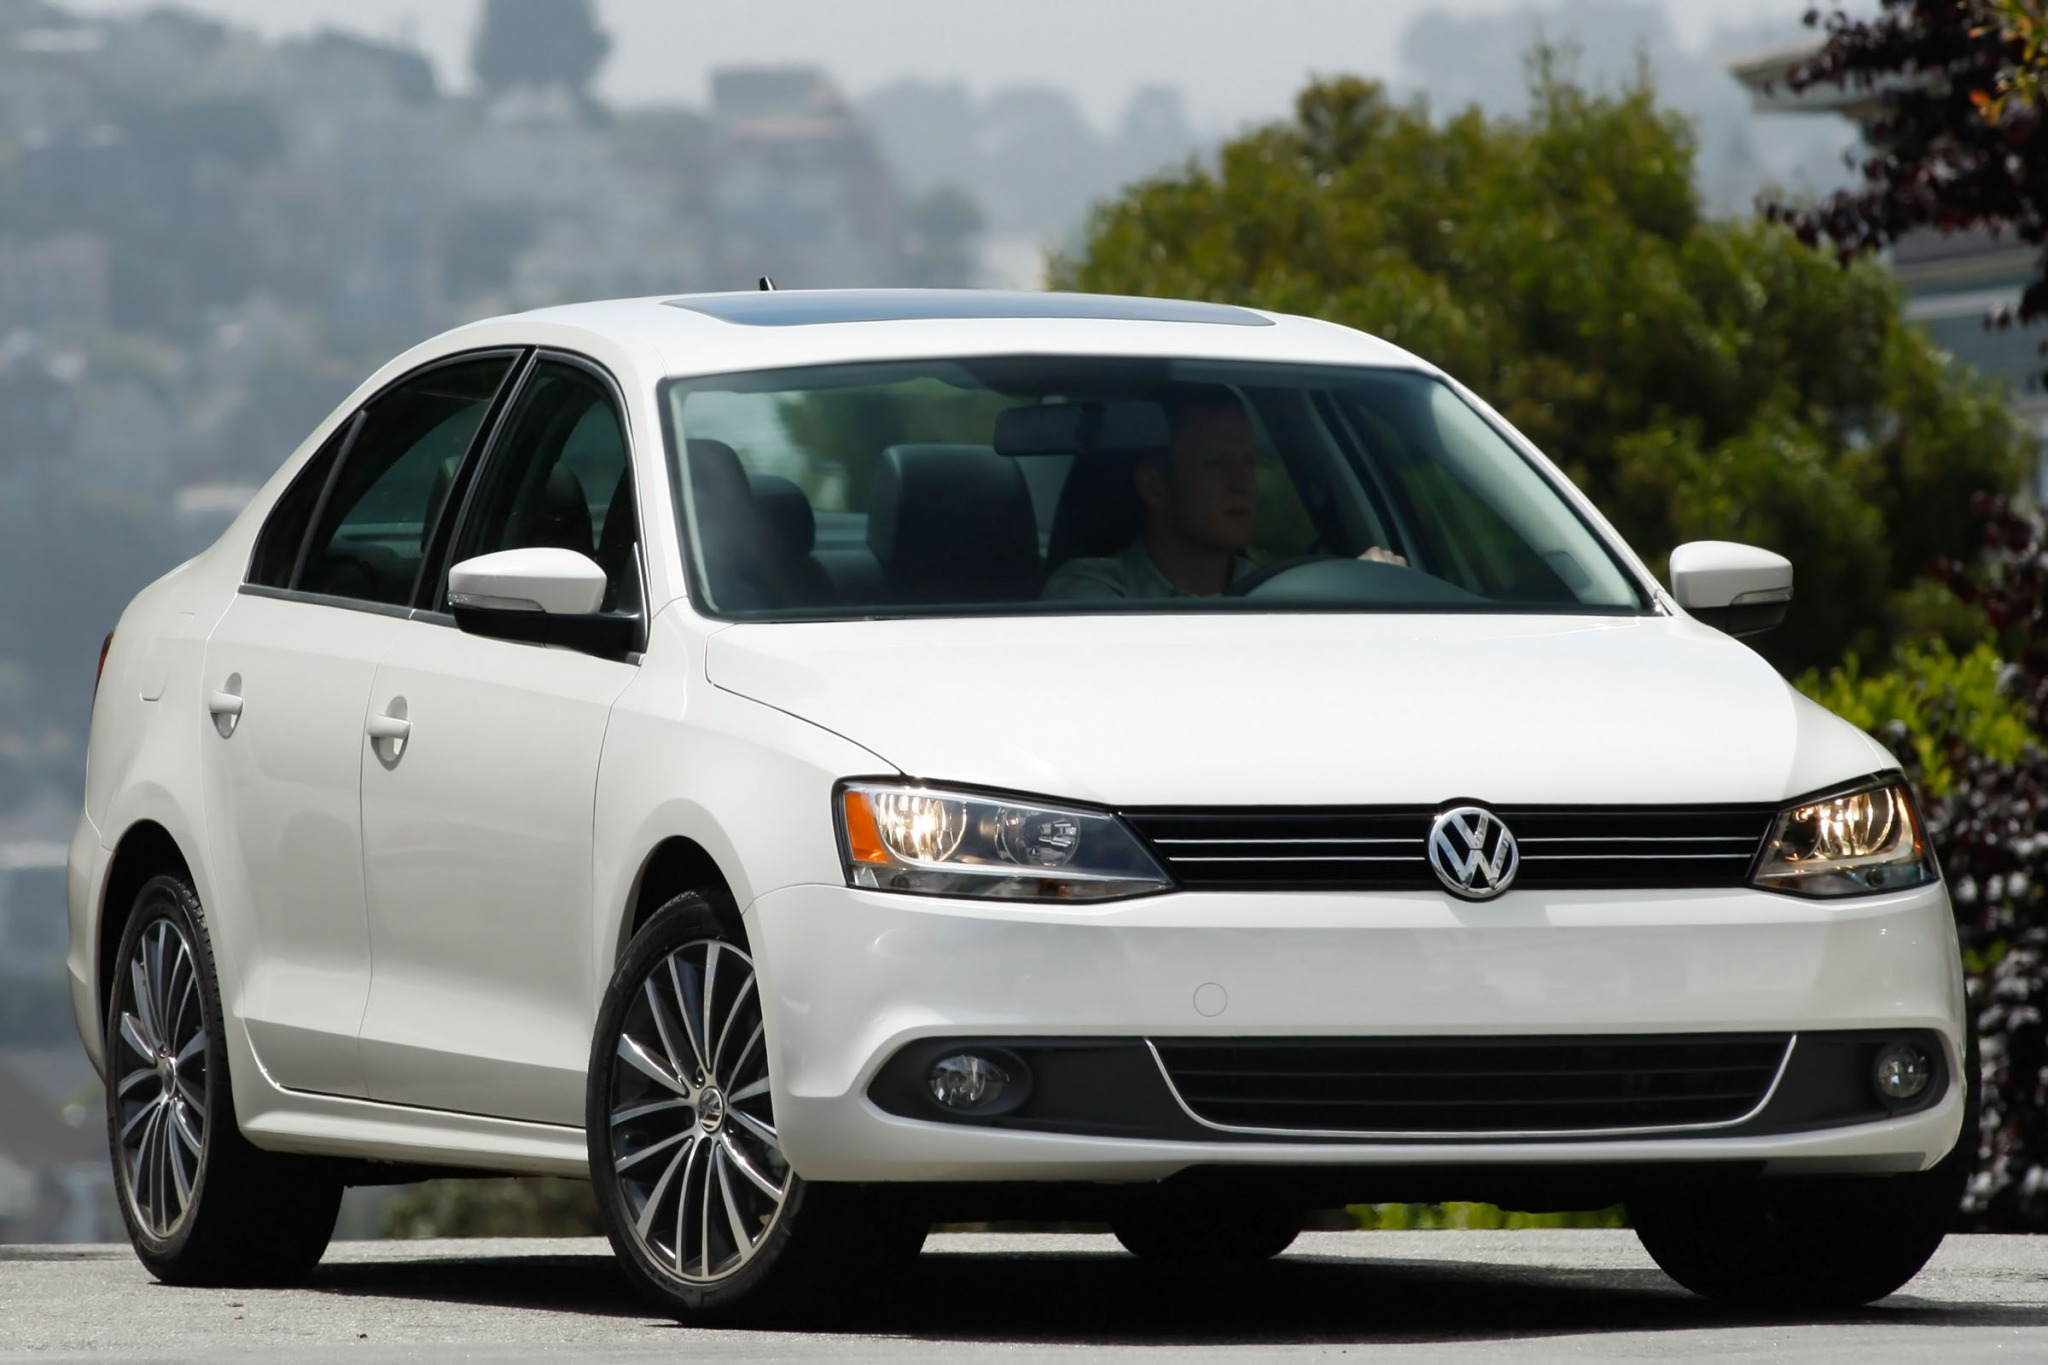 mib in s original infotainment volkswagen page ii depth driver reviews model car jetta photo review and